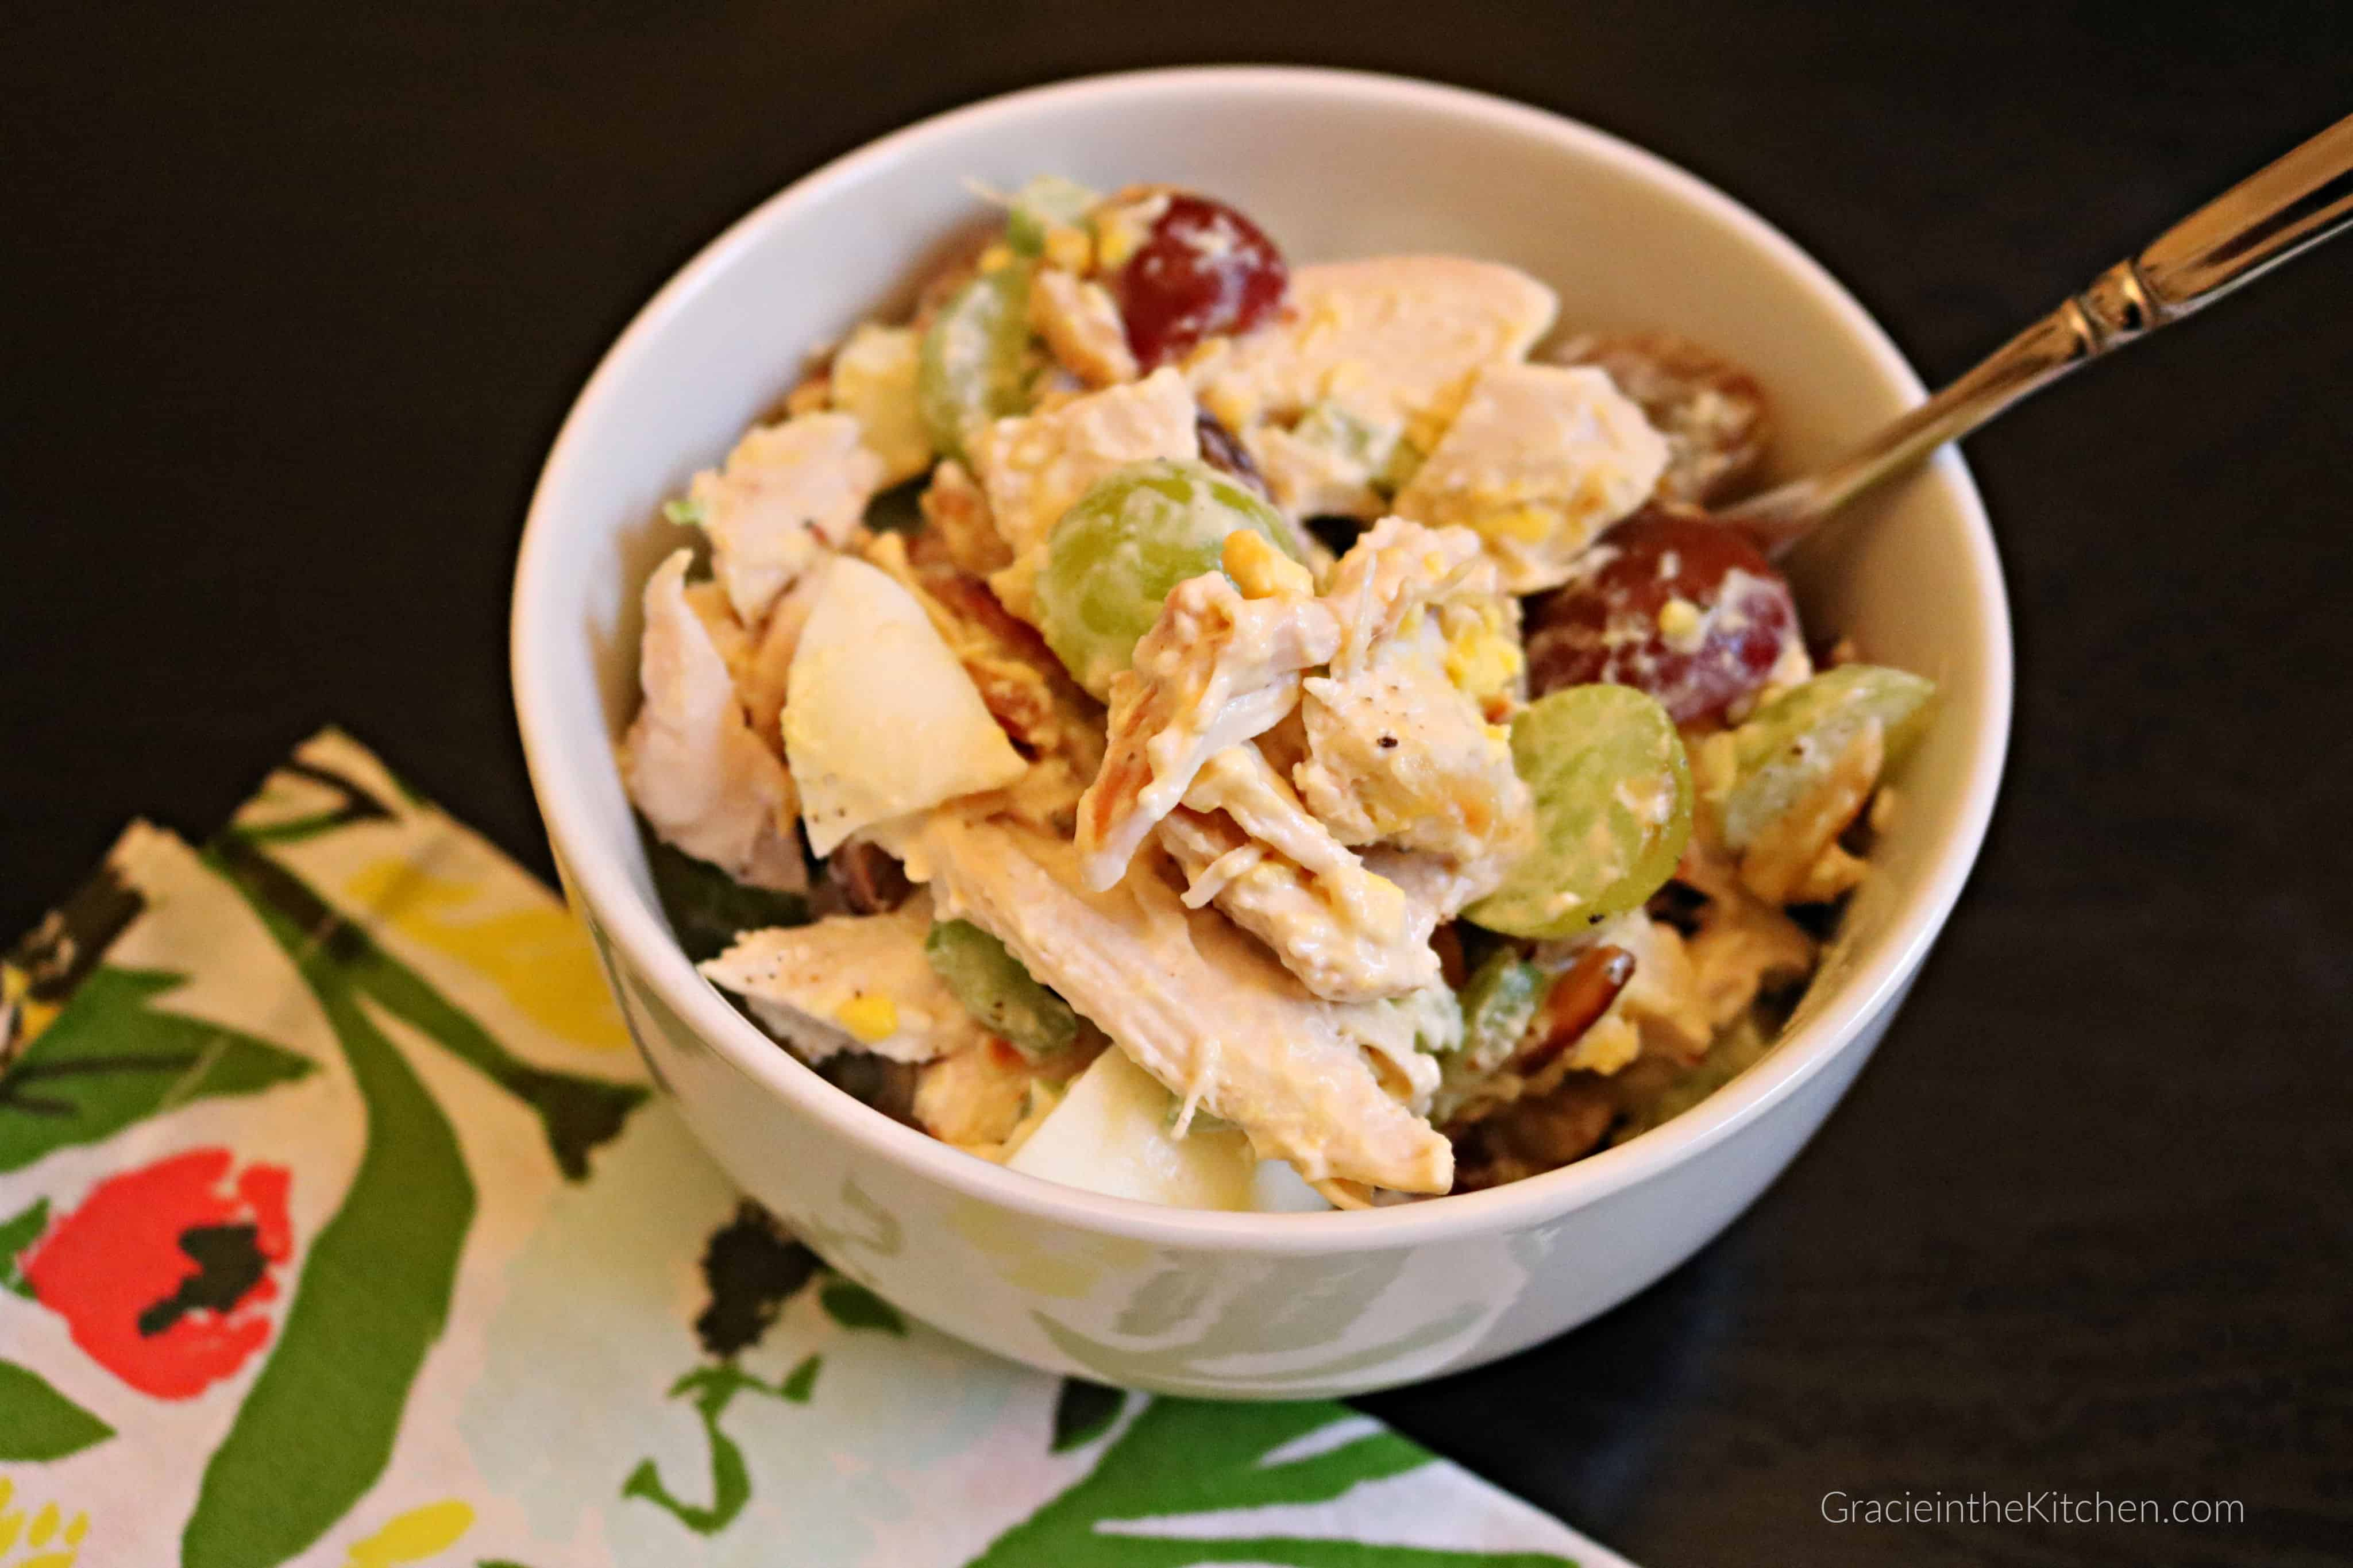 This Almond Chicken Salad Recipe is the BEST!